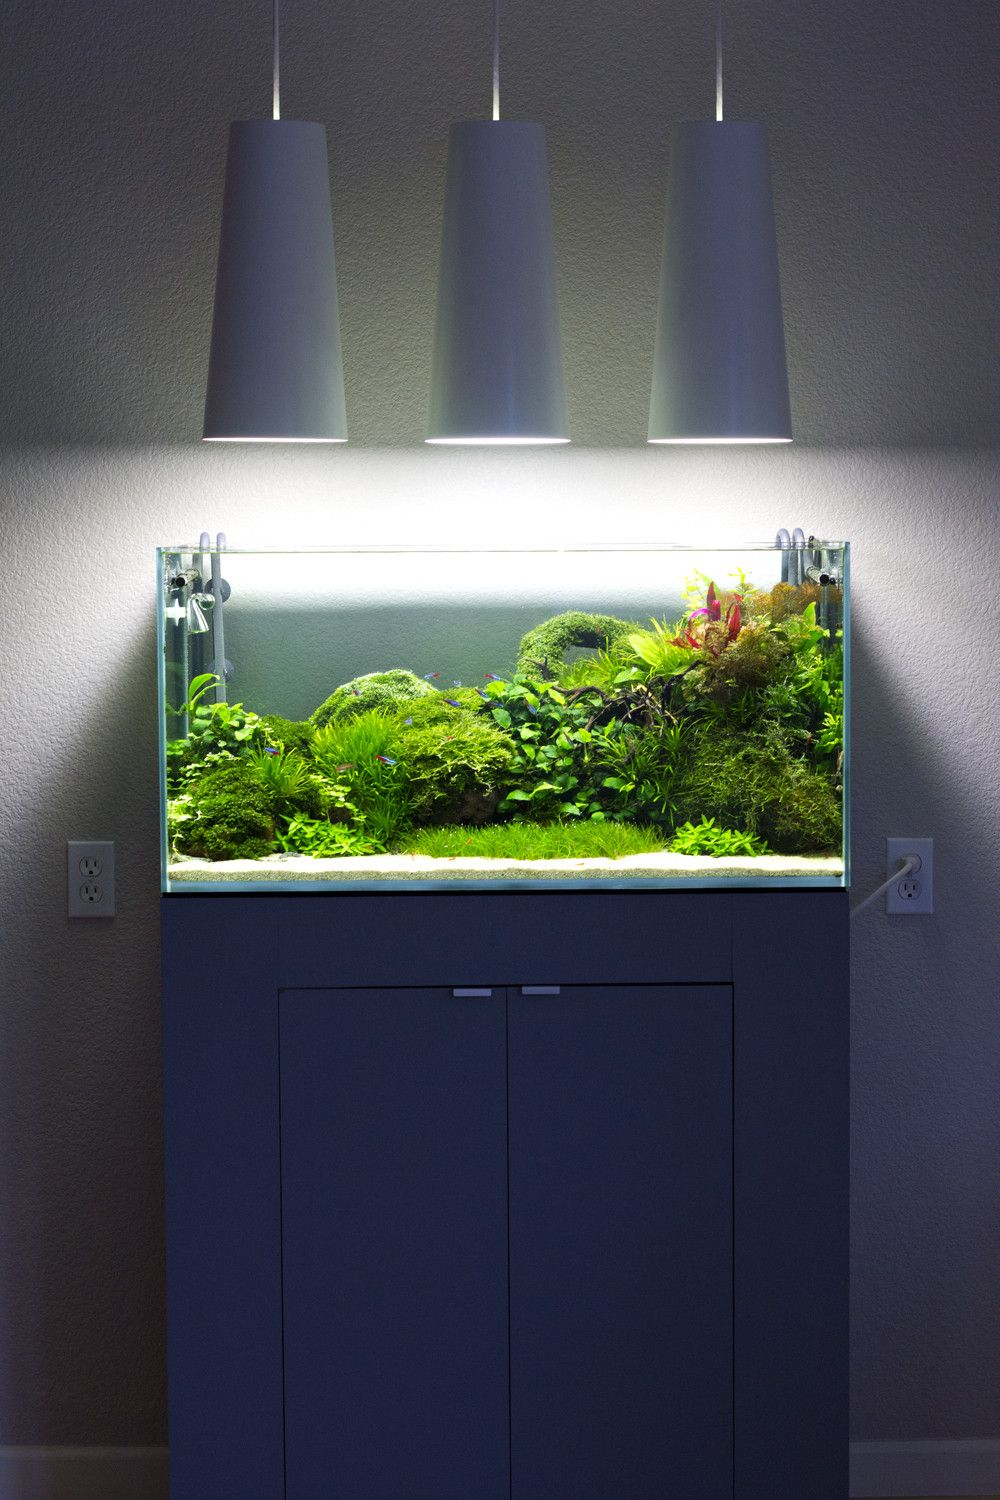 Aquarium Verlichting 30 Cm I Ve Been On This Site For A Long Time And Never Made An Account